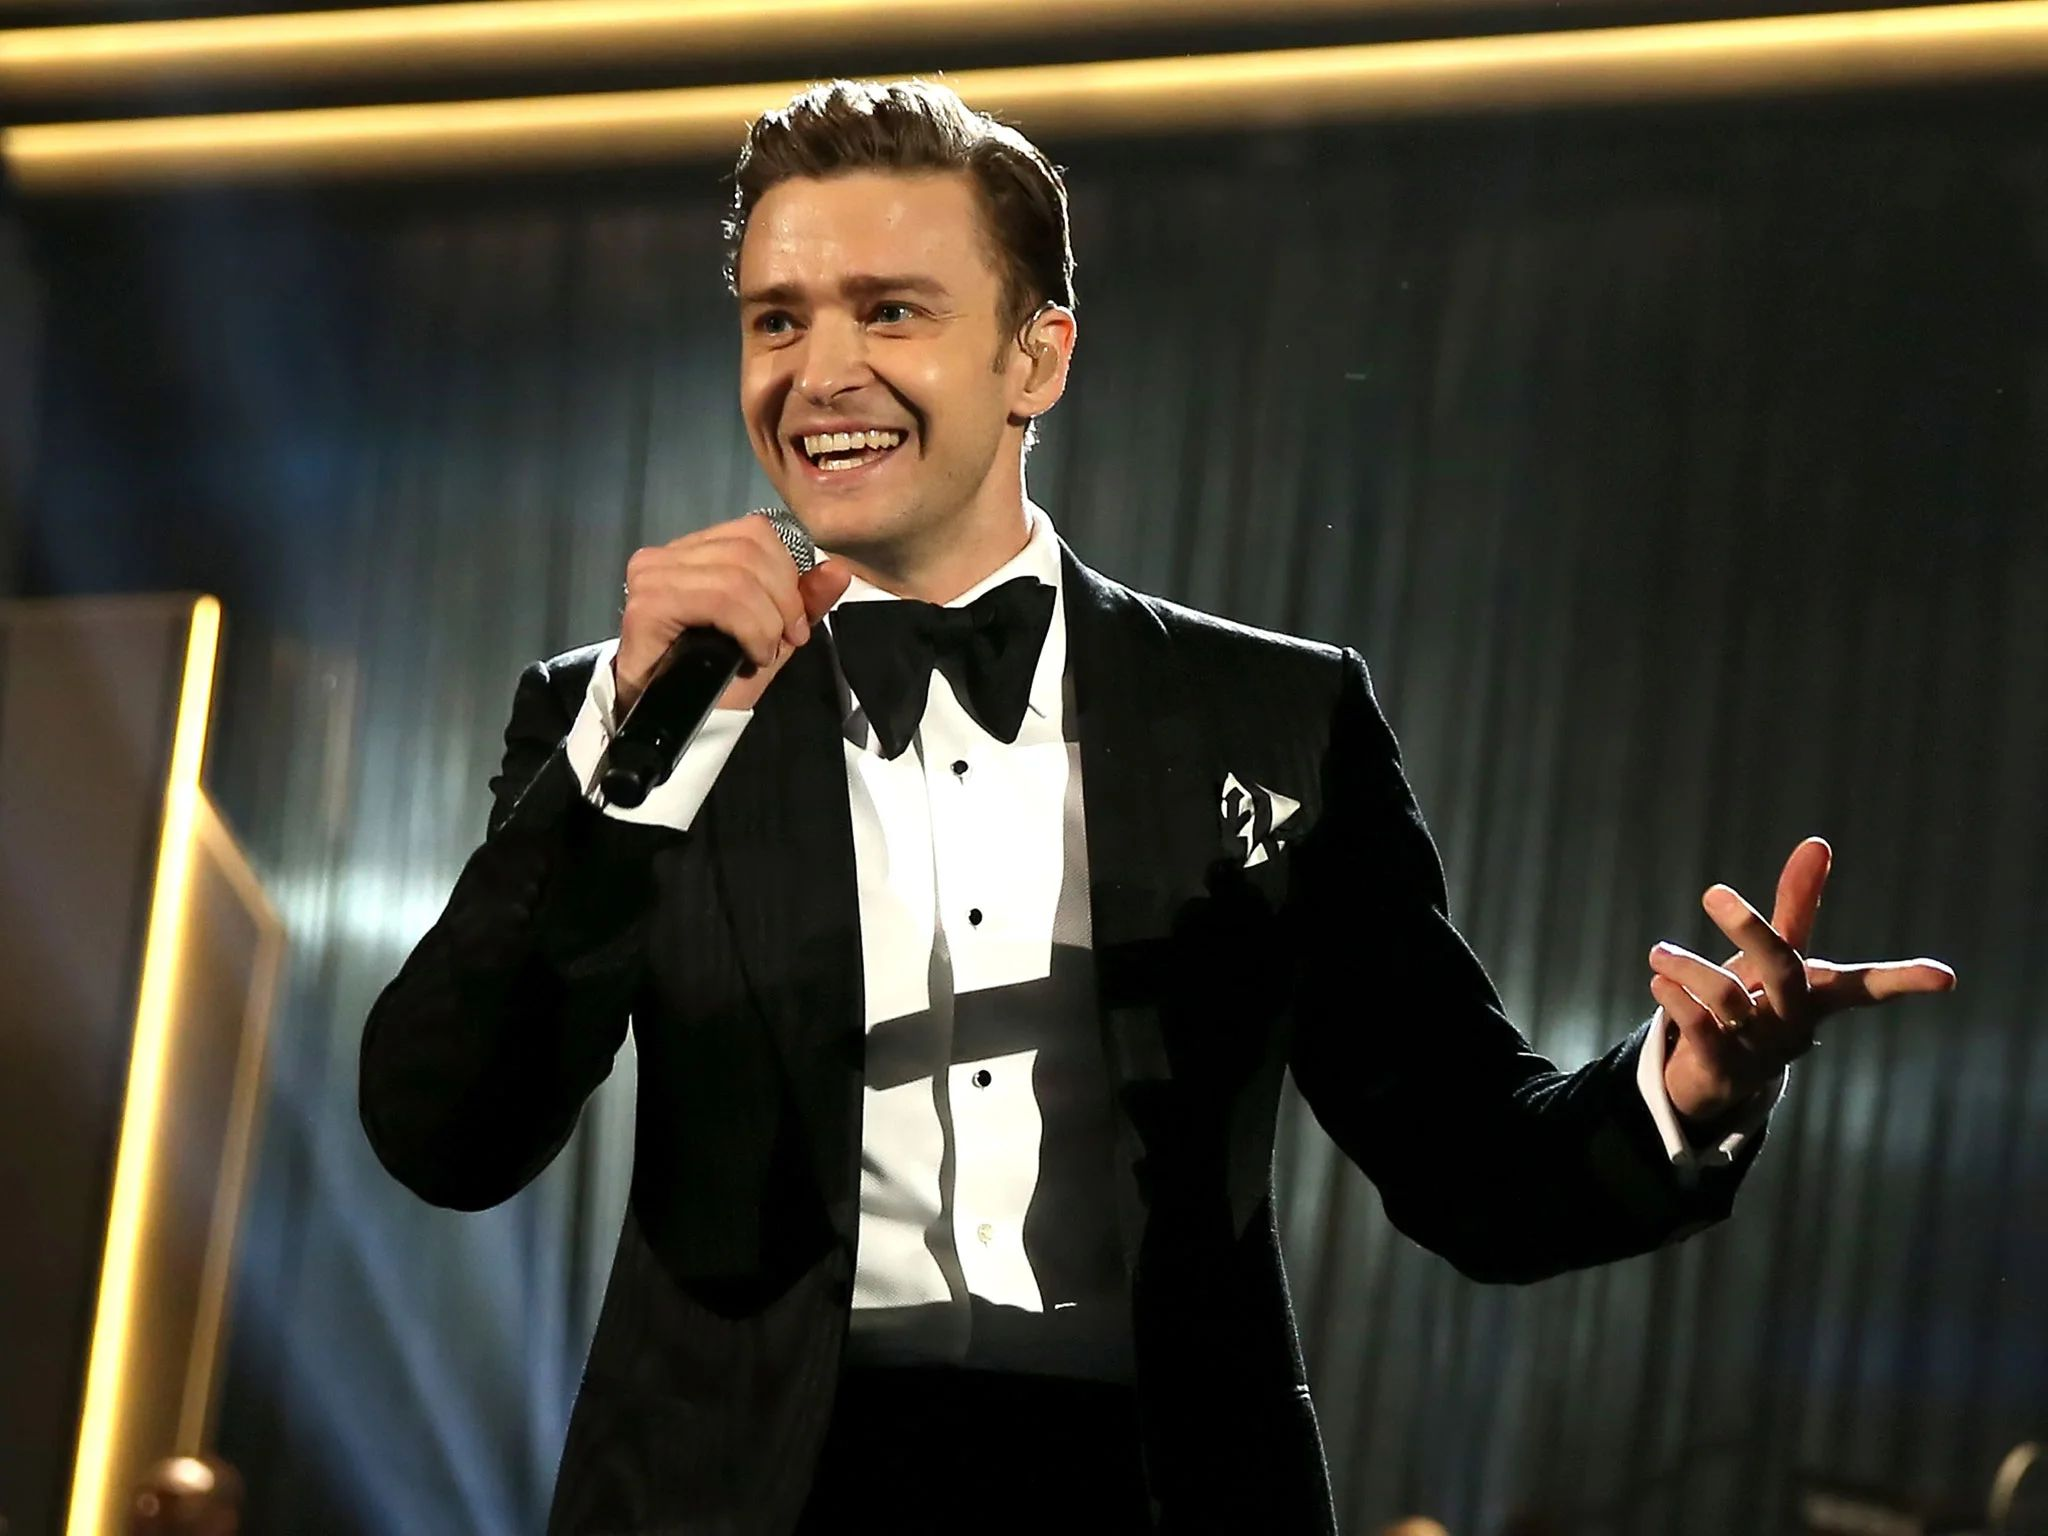 Justin timberlake performing new song can t stop the feeling at eurovision the independent